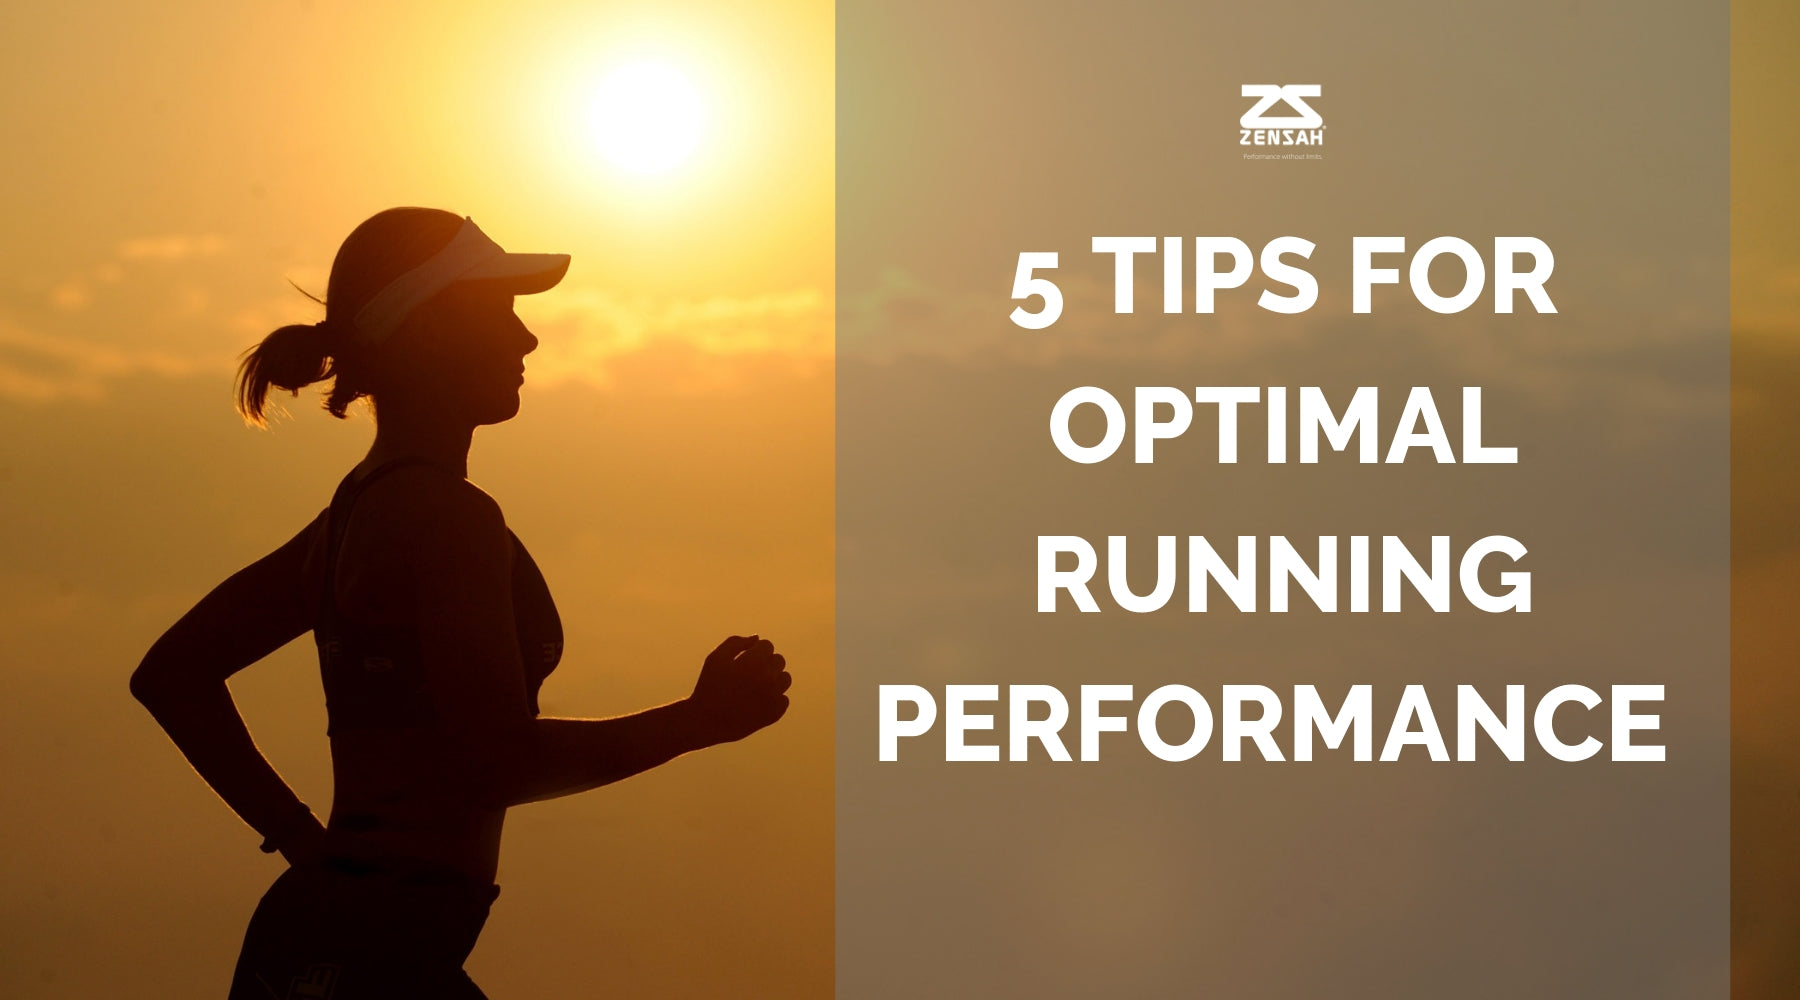 5 Tips for Optimal Running Performance